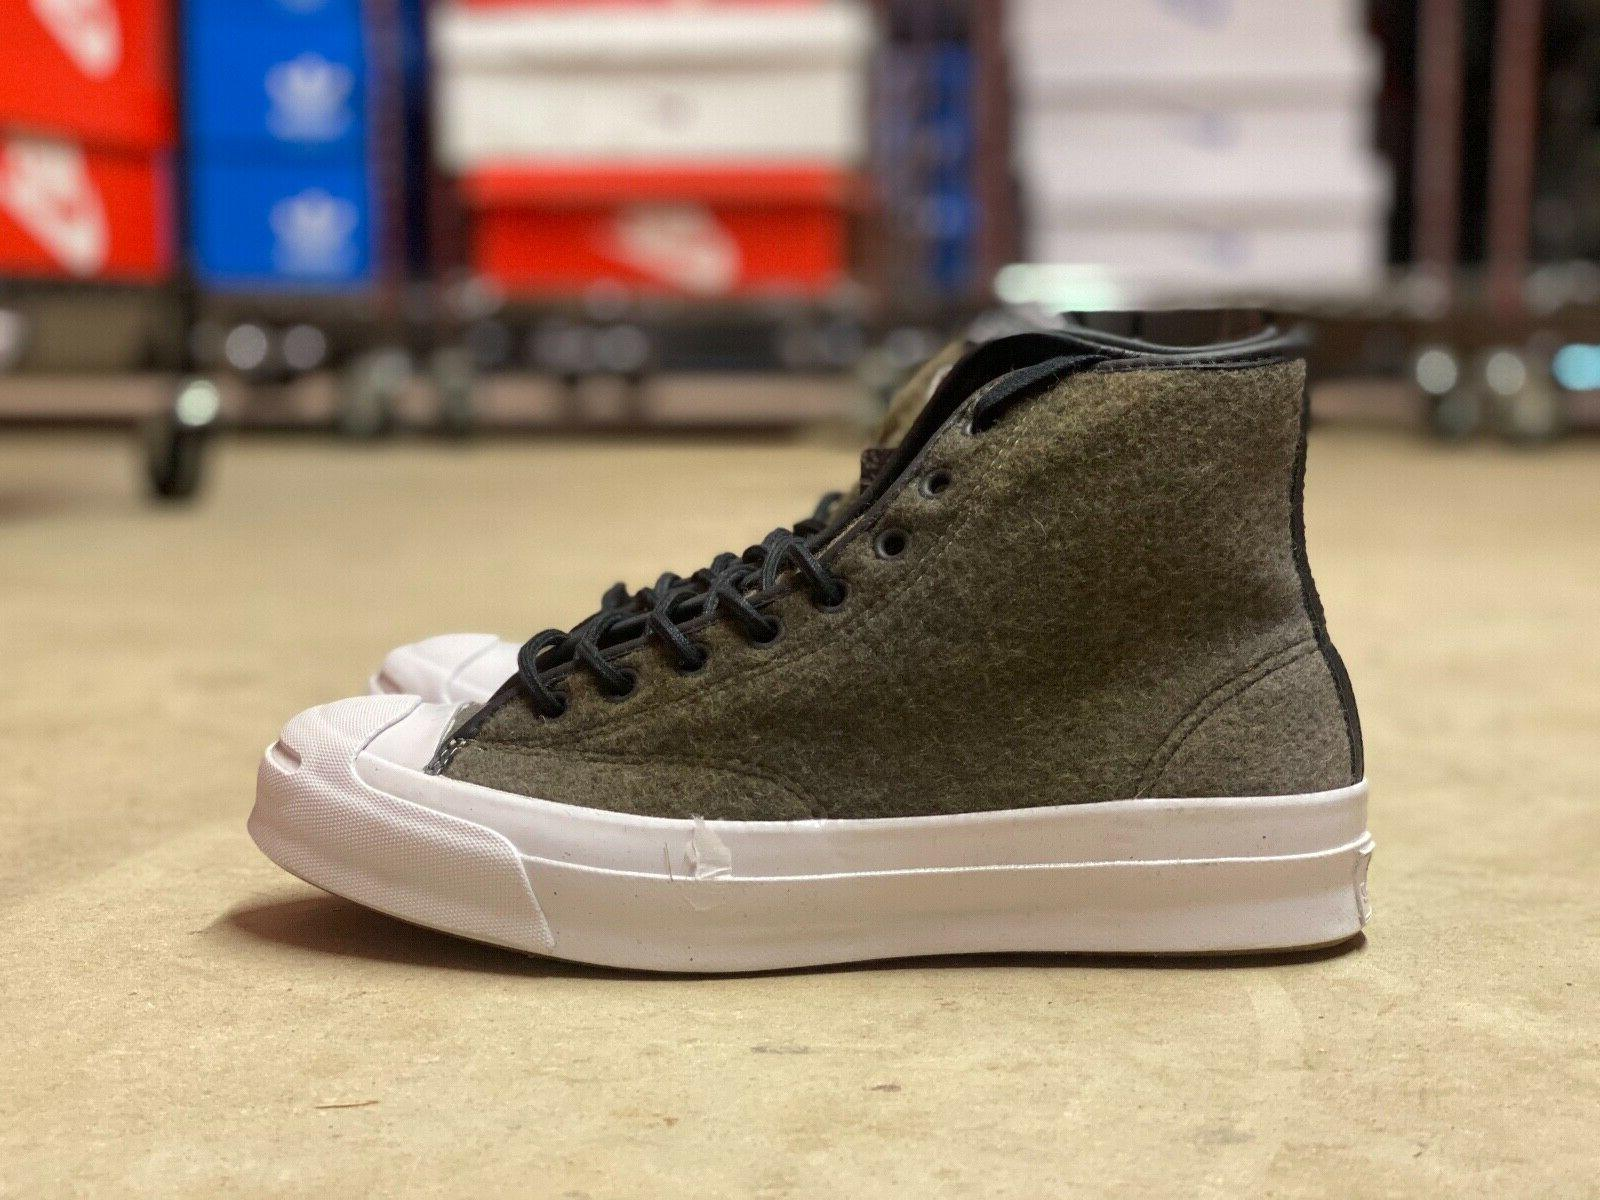 Converse Jack Purcell Woolrich Street Boots Mens Sizes 15388